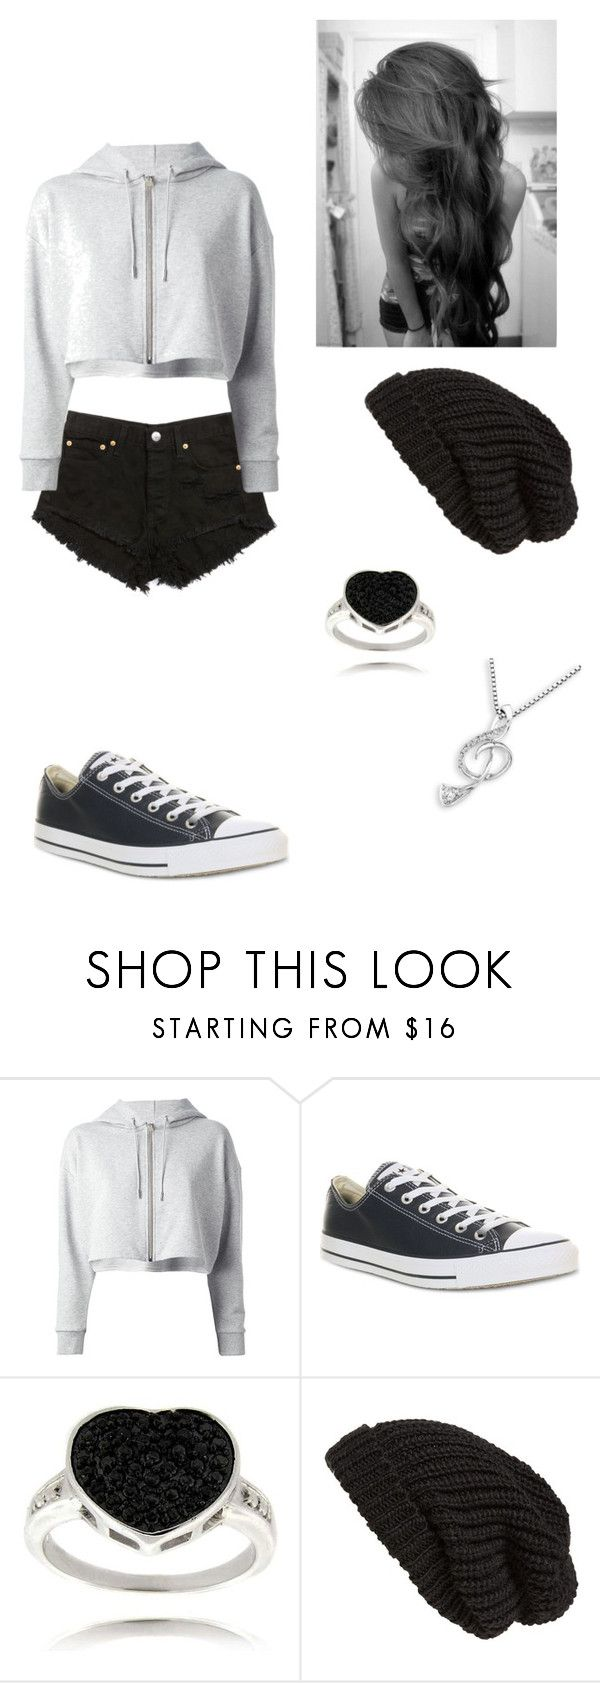 """""""Untitled -59-"""" by heaven-cedeno ❤ liked on Polyvore featuring Yves Saint Laurent, Converse, Finesque, Tarnish and MaBelle"""